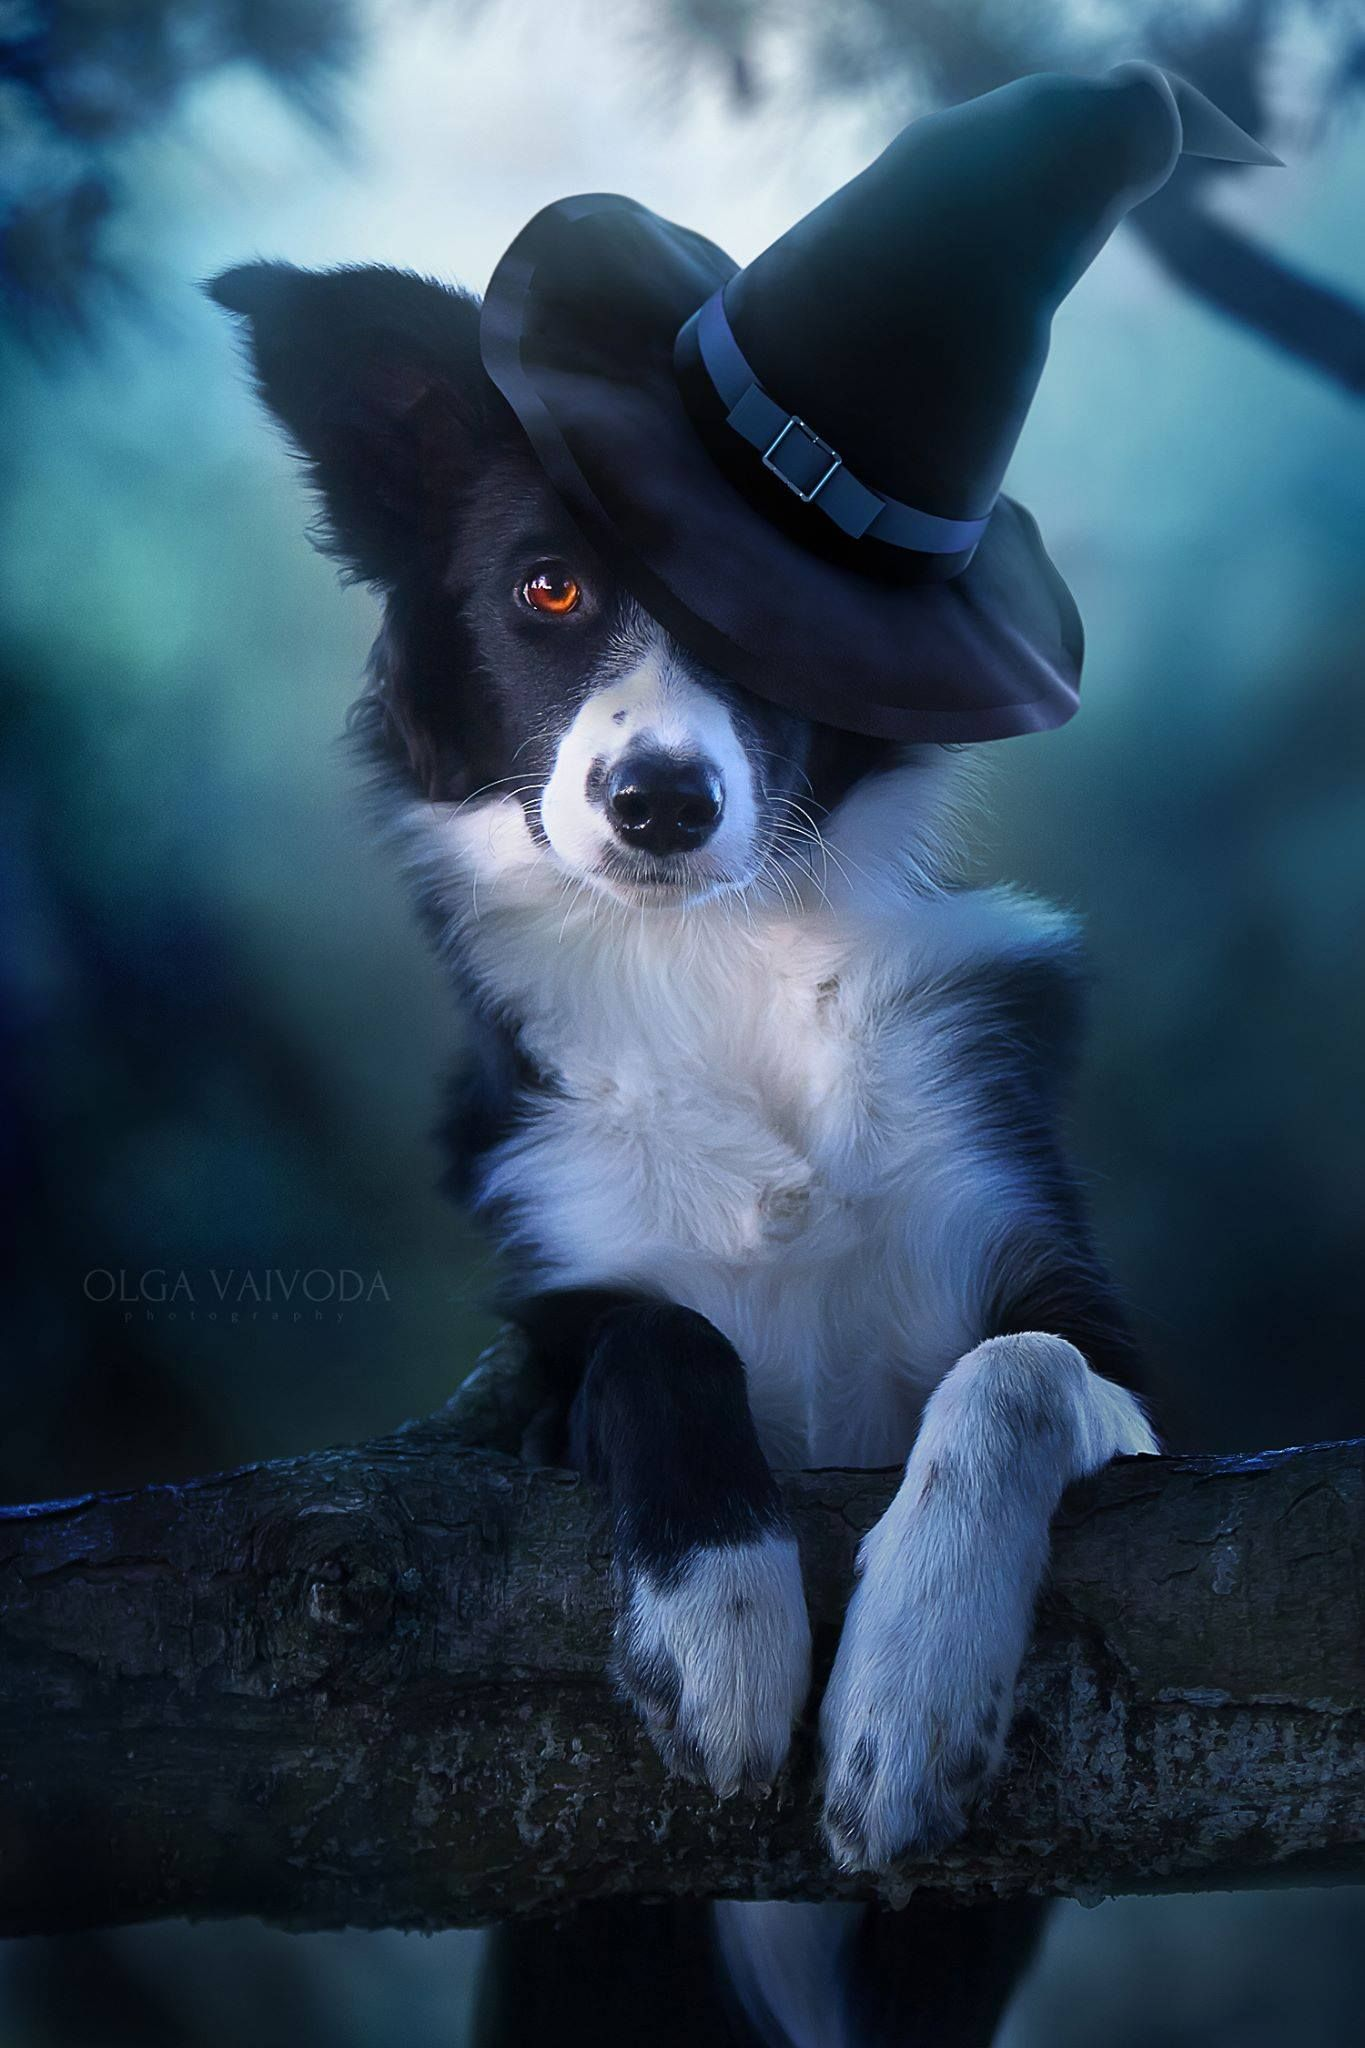 Pin by Sarah Smallwood on Dogs Day Dog halloween, Puppy